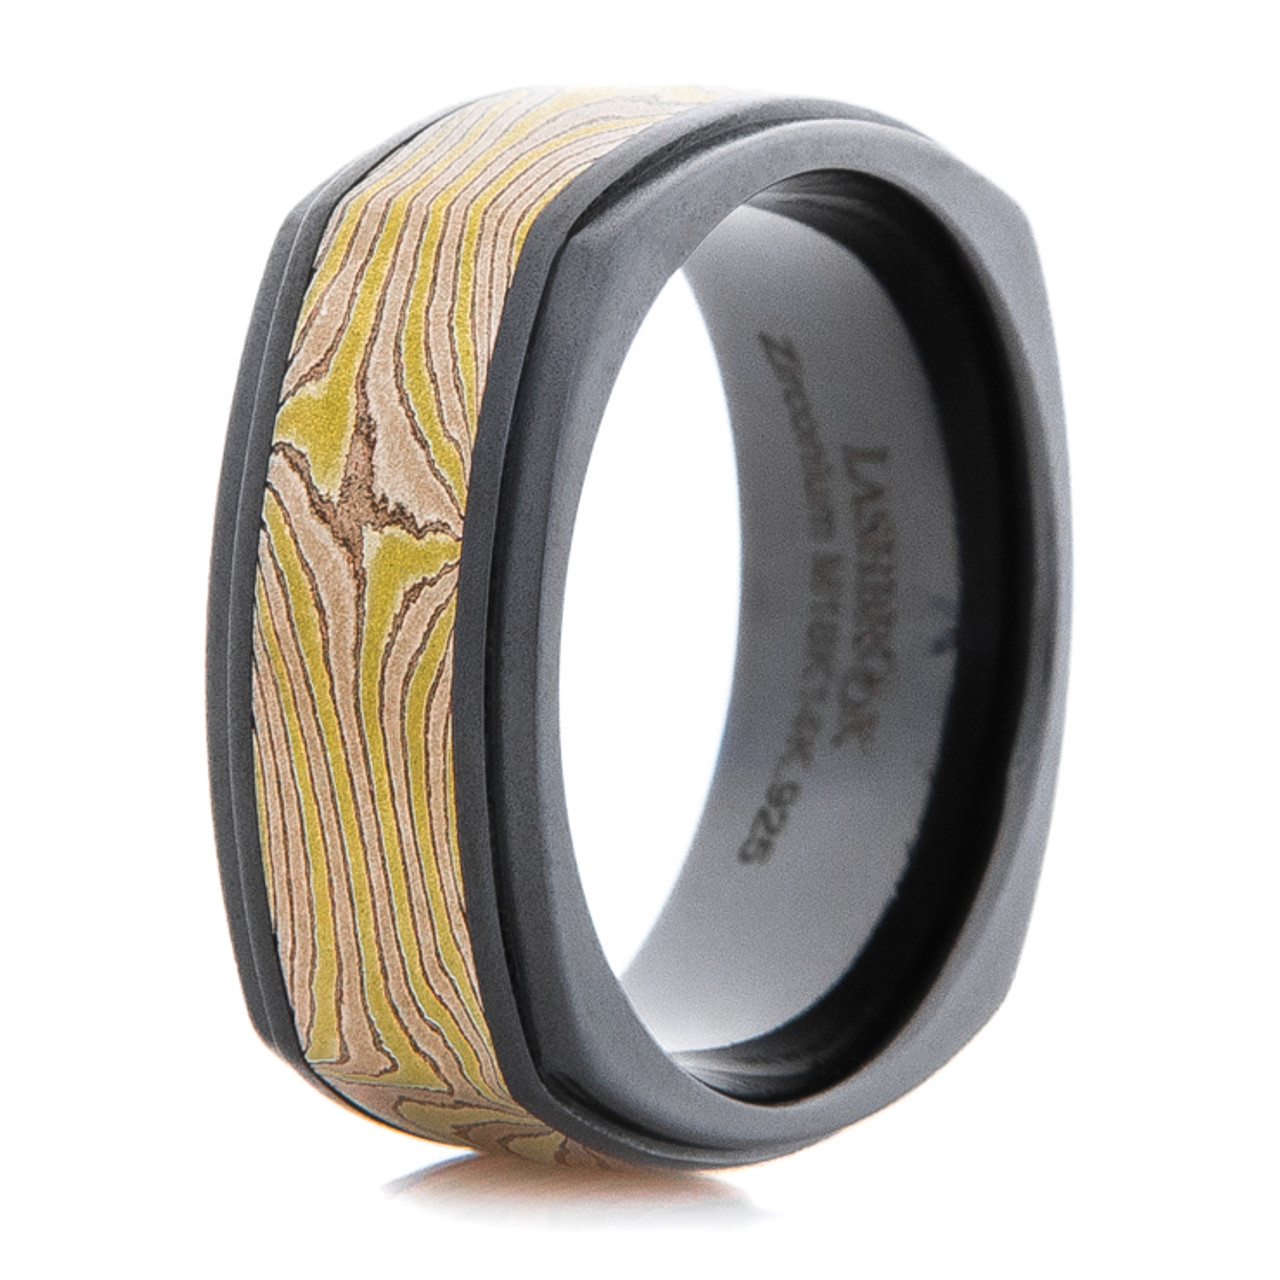 damascus copy rings steel products ring gane mokume custom and band wedding made gold sleeve rose with